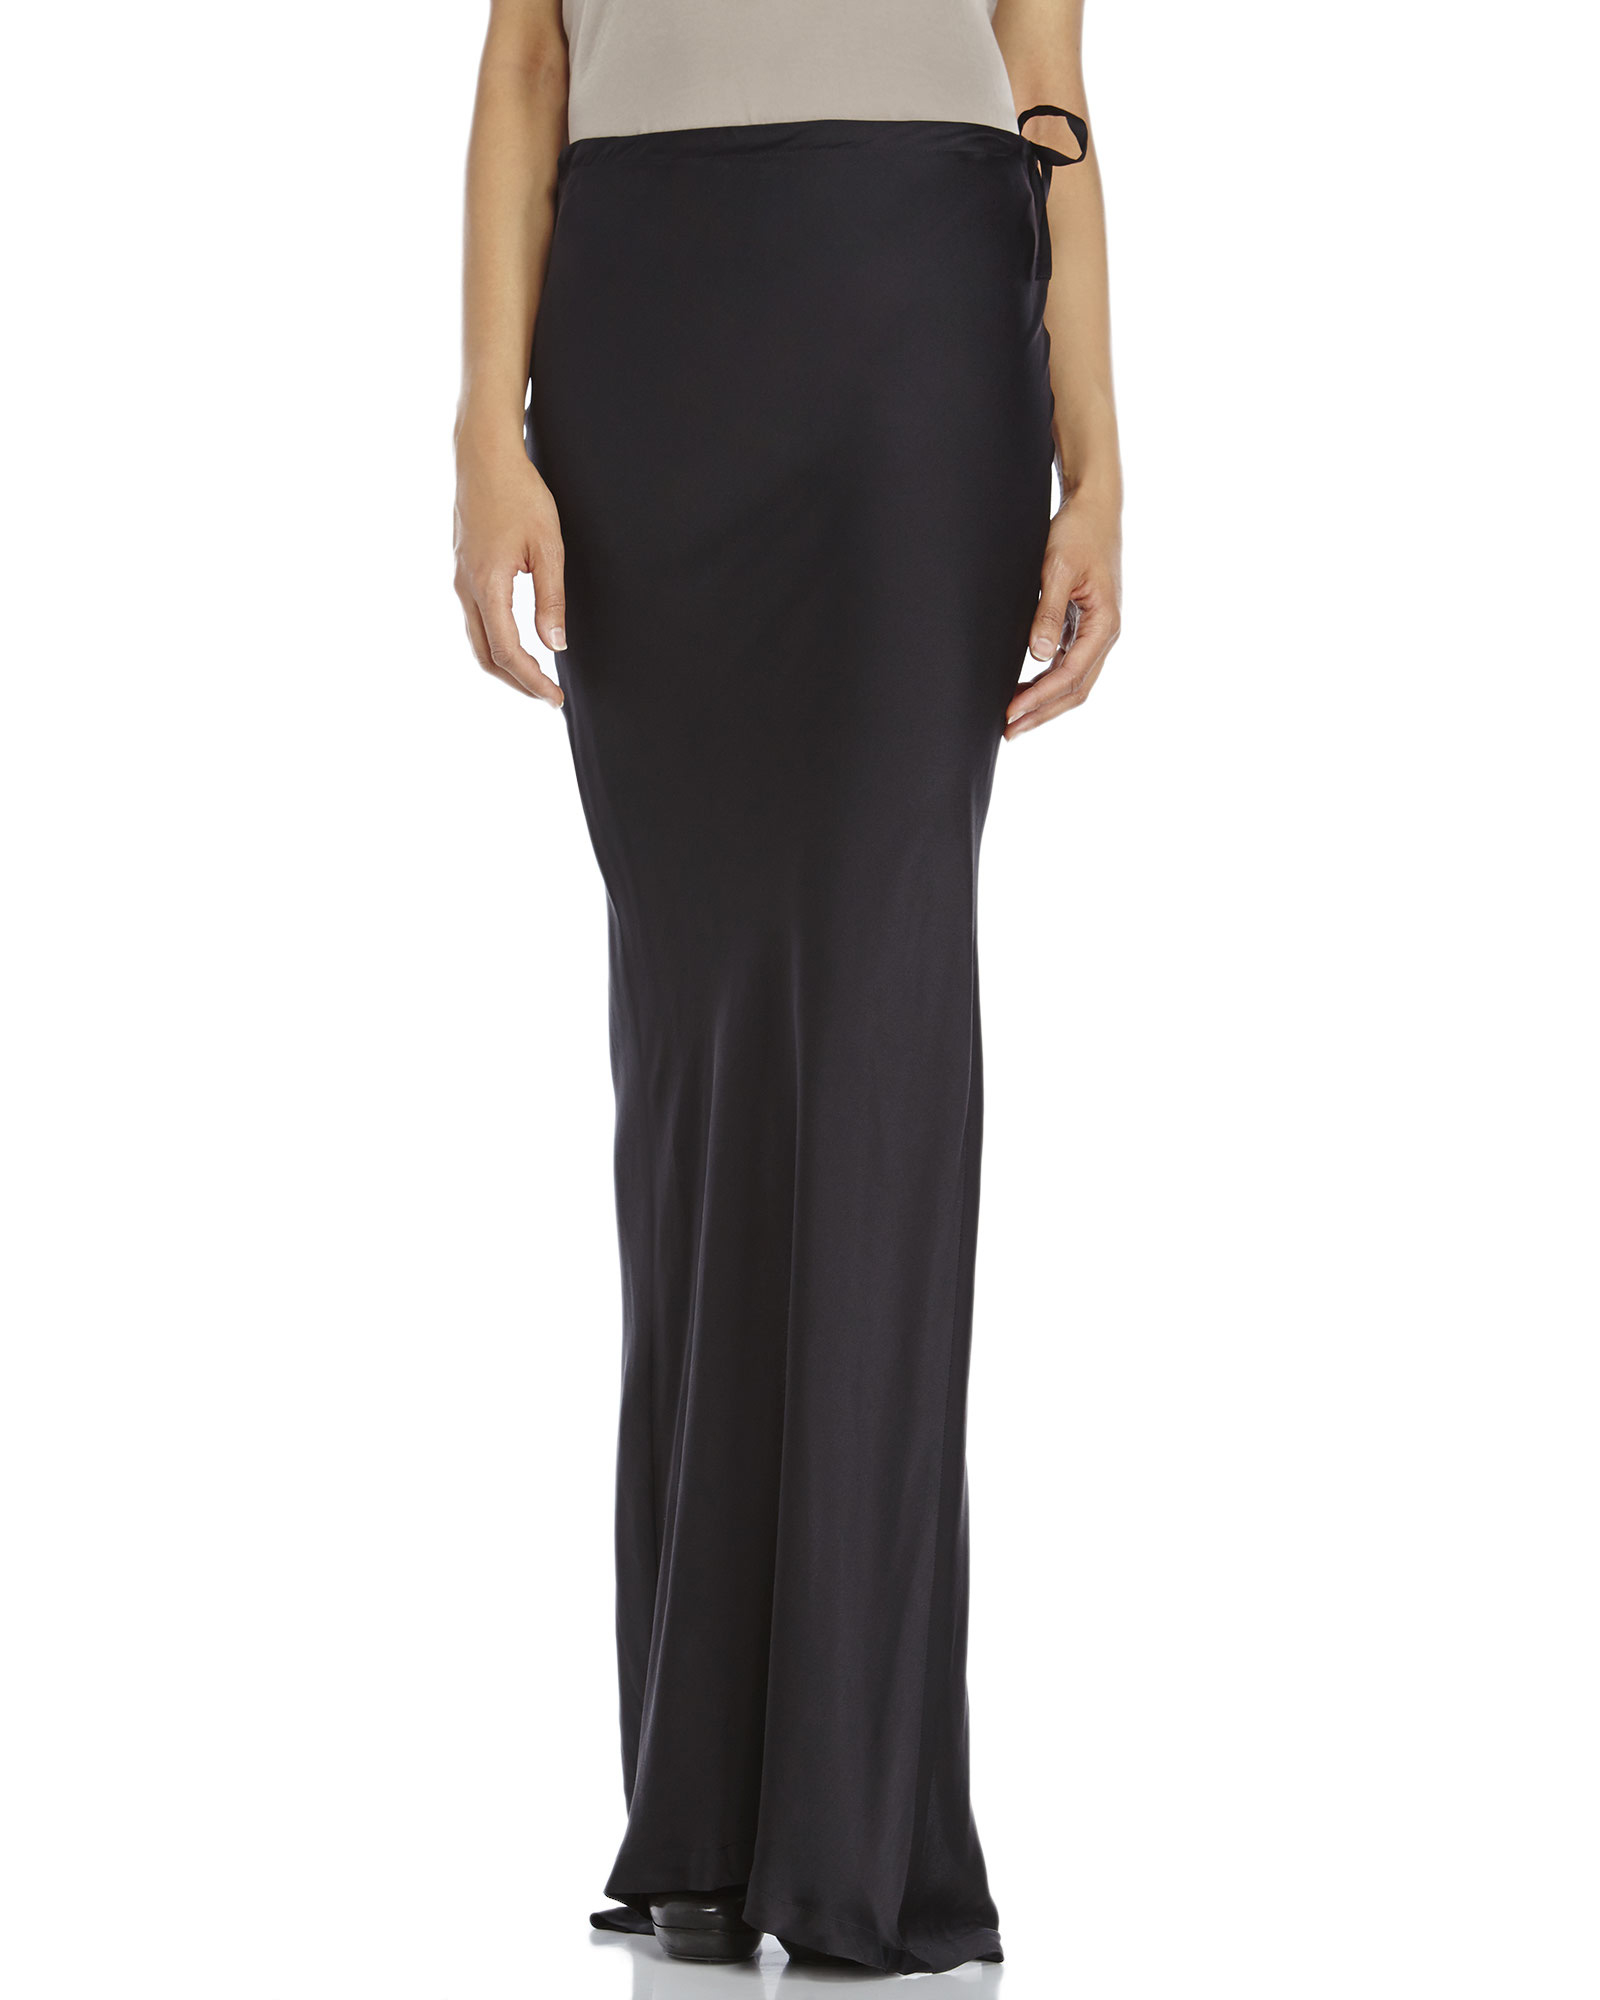 Ann demeulemeester Black Silk Maxi Skirt in Black | Lyst